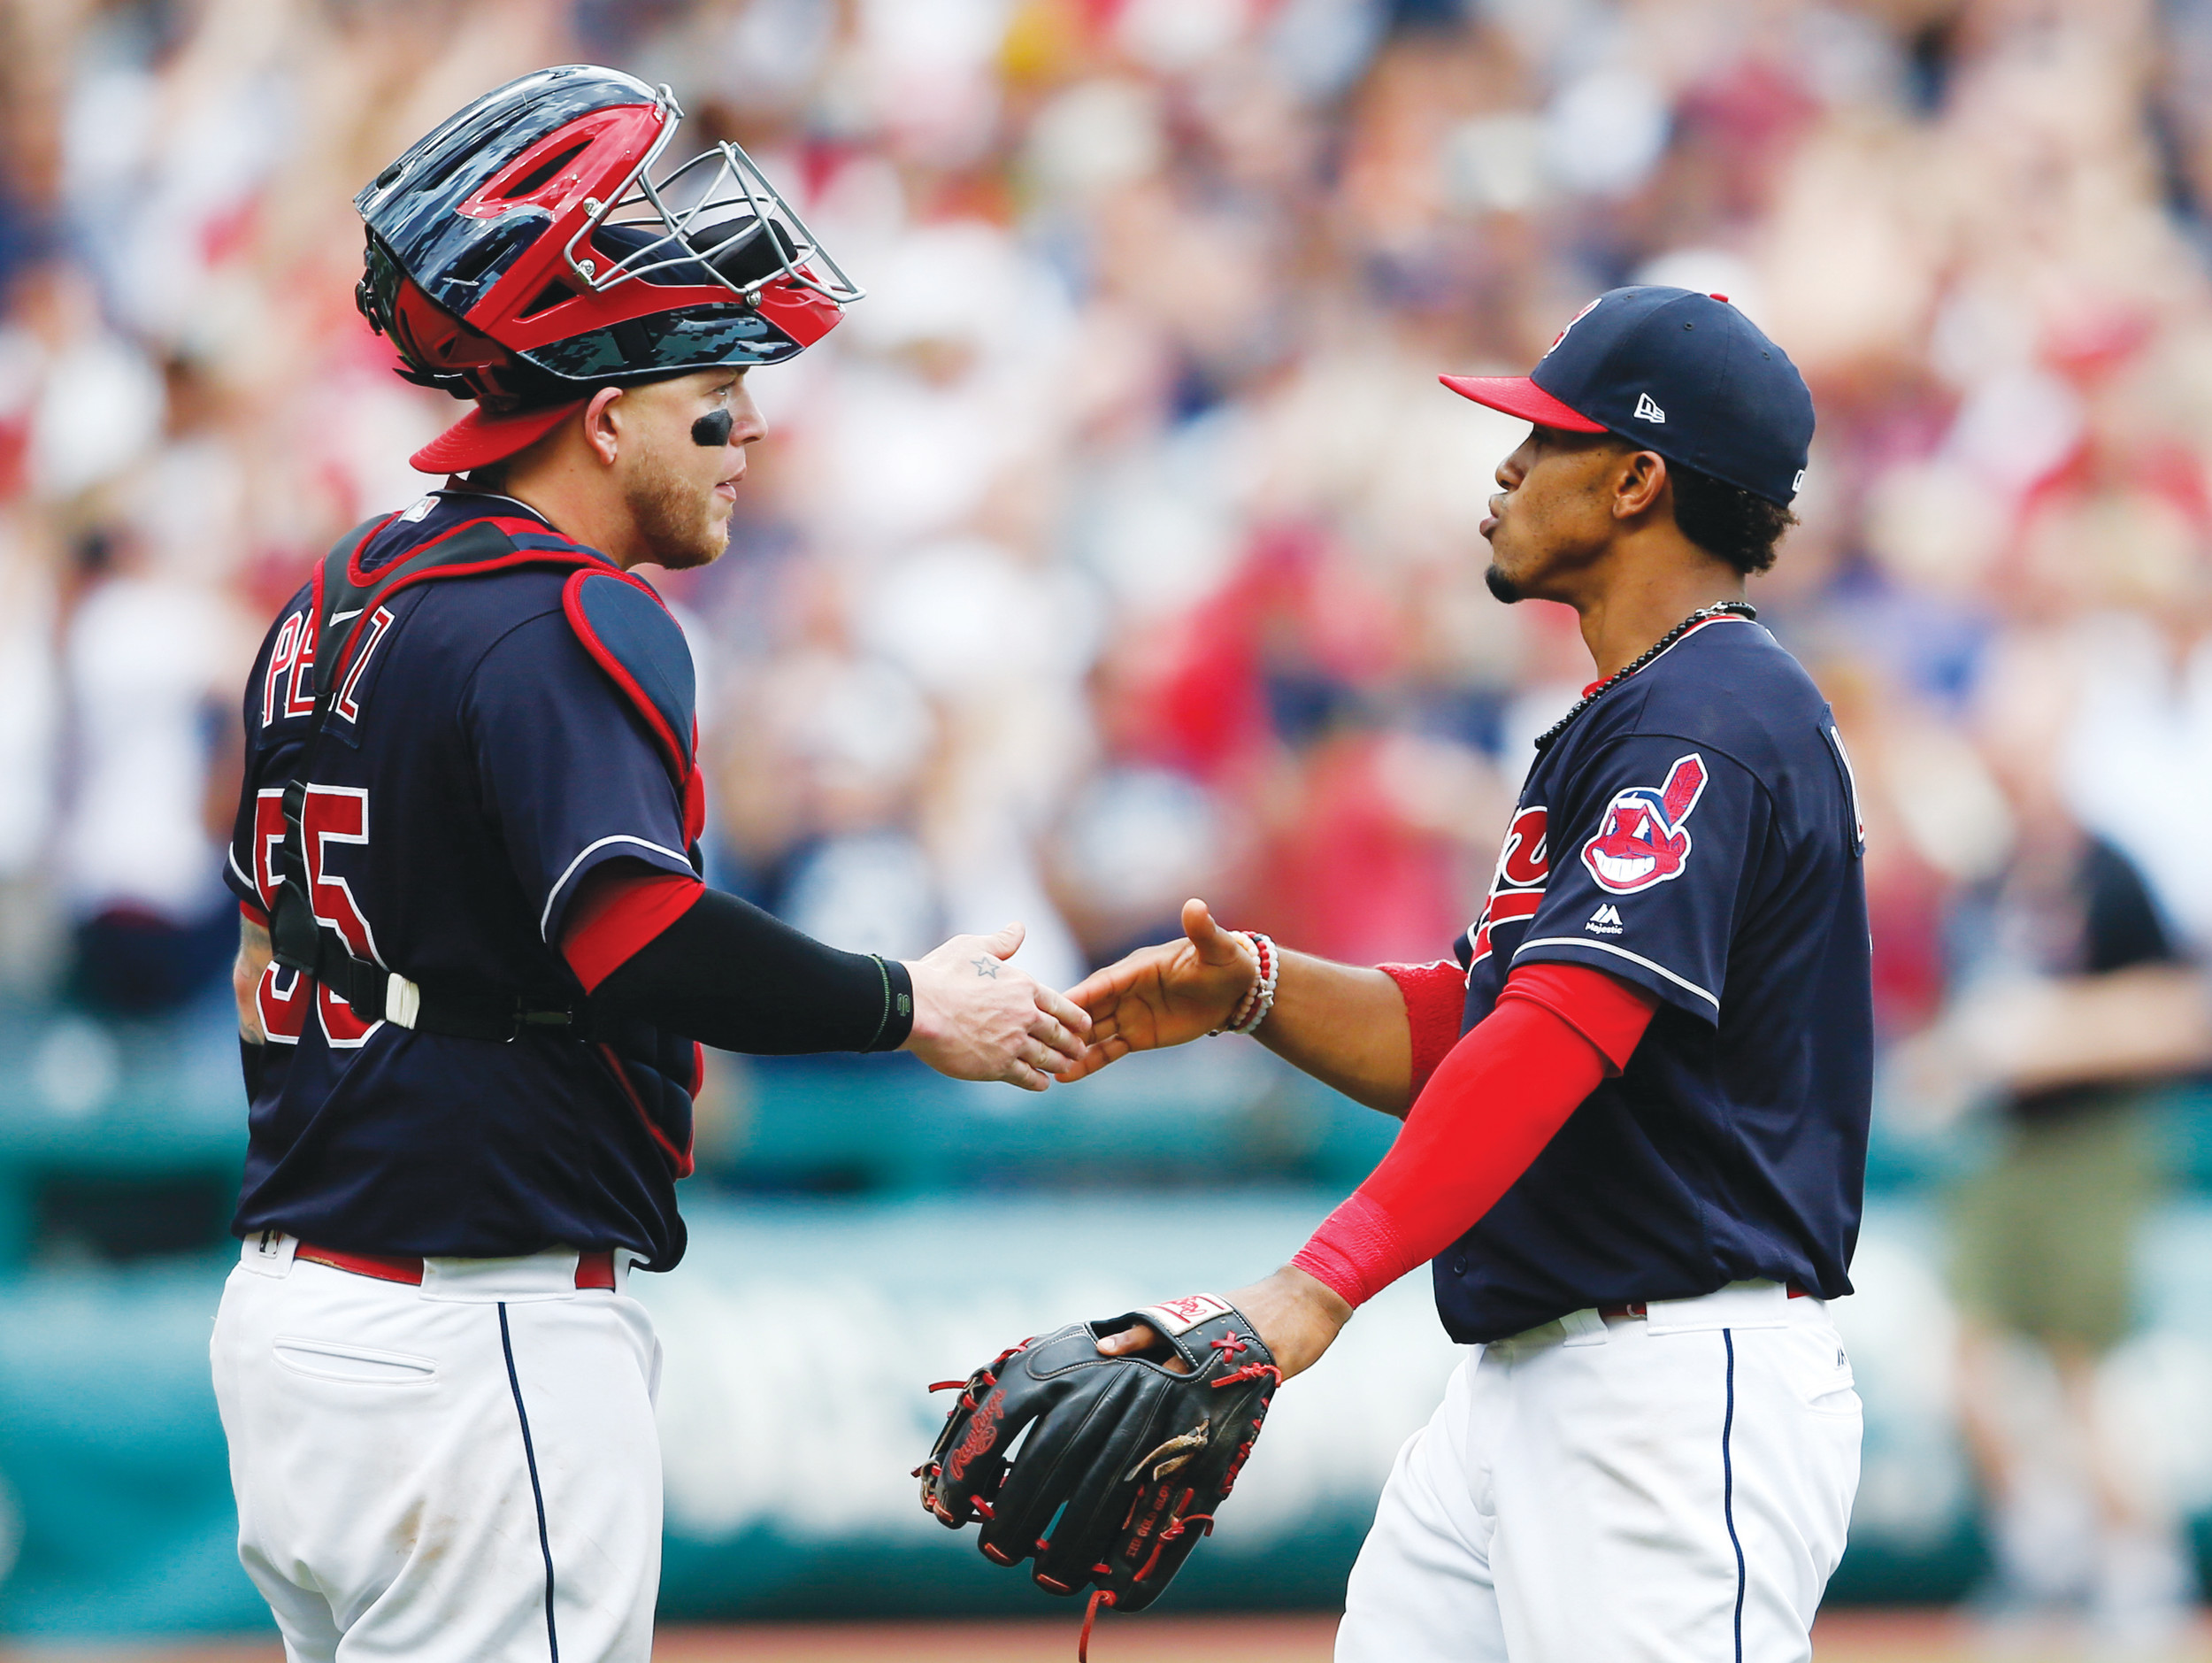 Cleveland's Roberto Perez, left, and Francisco Lindor celebrate a 5-3 victory over Detroit on Wednesday at Progressive Field in Cleveland. The Indians set the American League record with their 21st consecutive victory.